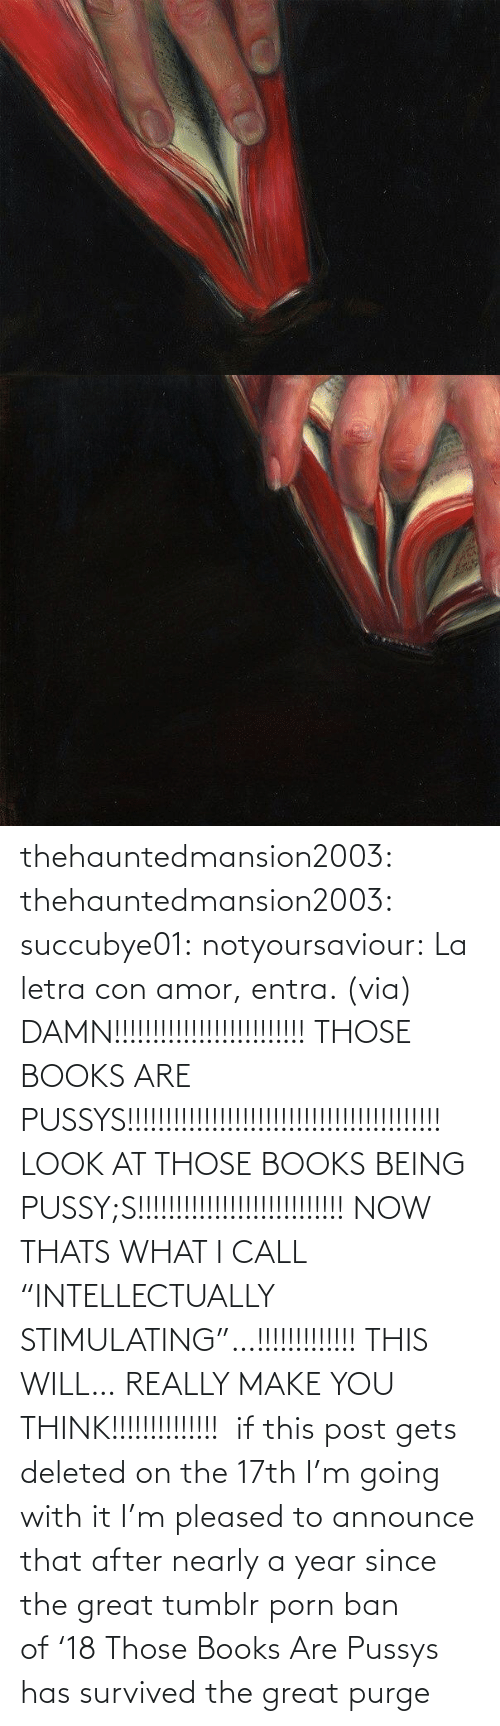 "Https Www Facebook Com: thehauntedmansion2003: thehauntedmansion2003:  succubye01:  notyoursaviour:  La letra con amor, entra. (via)  DAMN!!!!!!!!!!!!!!!!!!!!!!!!! THOSE BOOKS ARE PUSSYS!!!!!!!!!!!!!!!!!!!!!!!!!!!!!!!!!!!!!!!!! LOOK AT THOSE BOOKS BEING PUSSY;S!!!!!!!!!!!!!!!!!!!!!!!!!!! NOW THATS WHAT I CALL ""INTELLECTUALLY STIMULATING""…!!!!!!!!!!!!! THIS WILL… REALLY MAKE YOU THINK!!!!!!!!!!!!!!   if this post gets deleted on the 17th I'm going with it  I'm pleased to announce that after nearly a year since the great tumblr porn ban of '18 Those Books Are Pussys has survived the great purge"